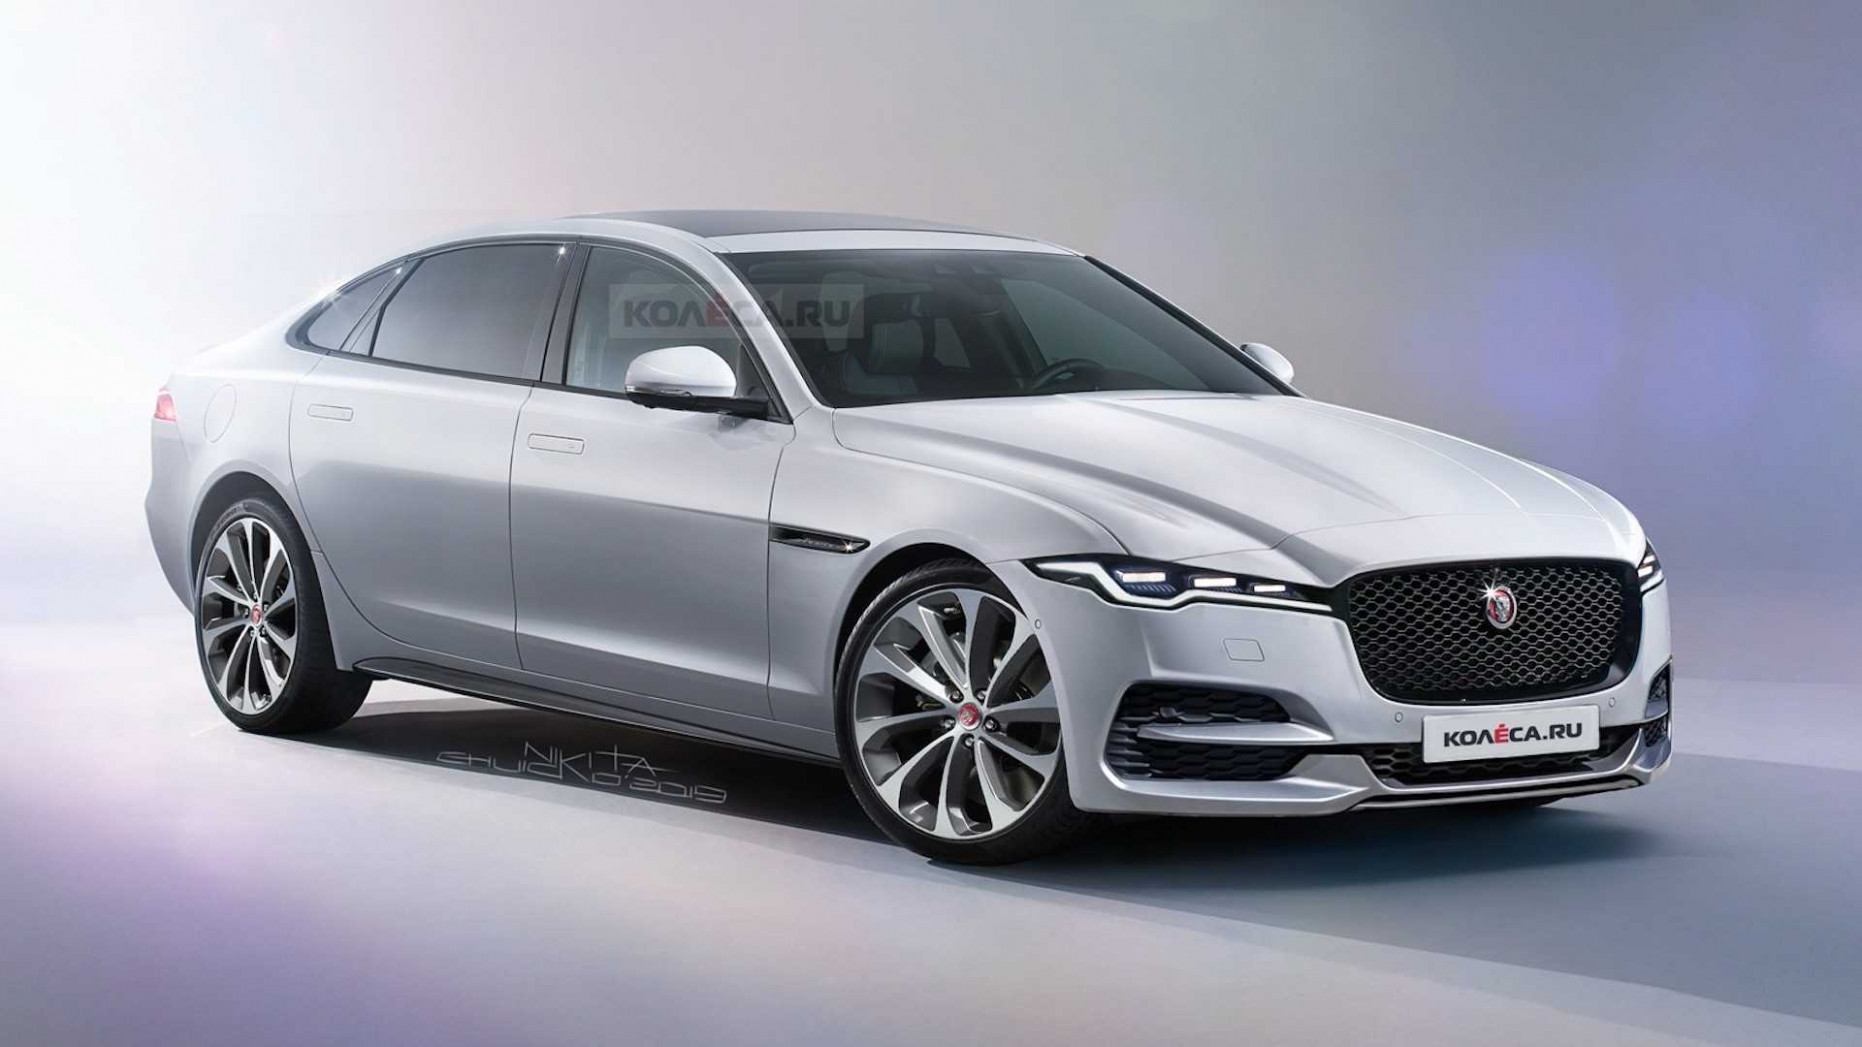 12 Jaguar XJ Rendered With Fierce Fascia But We Expect More